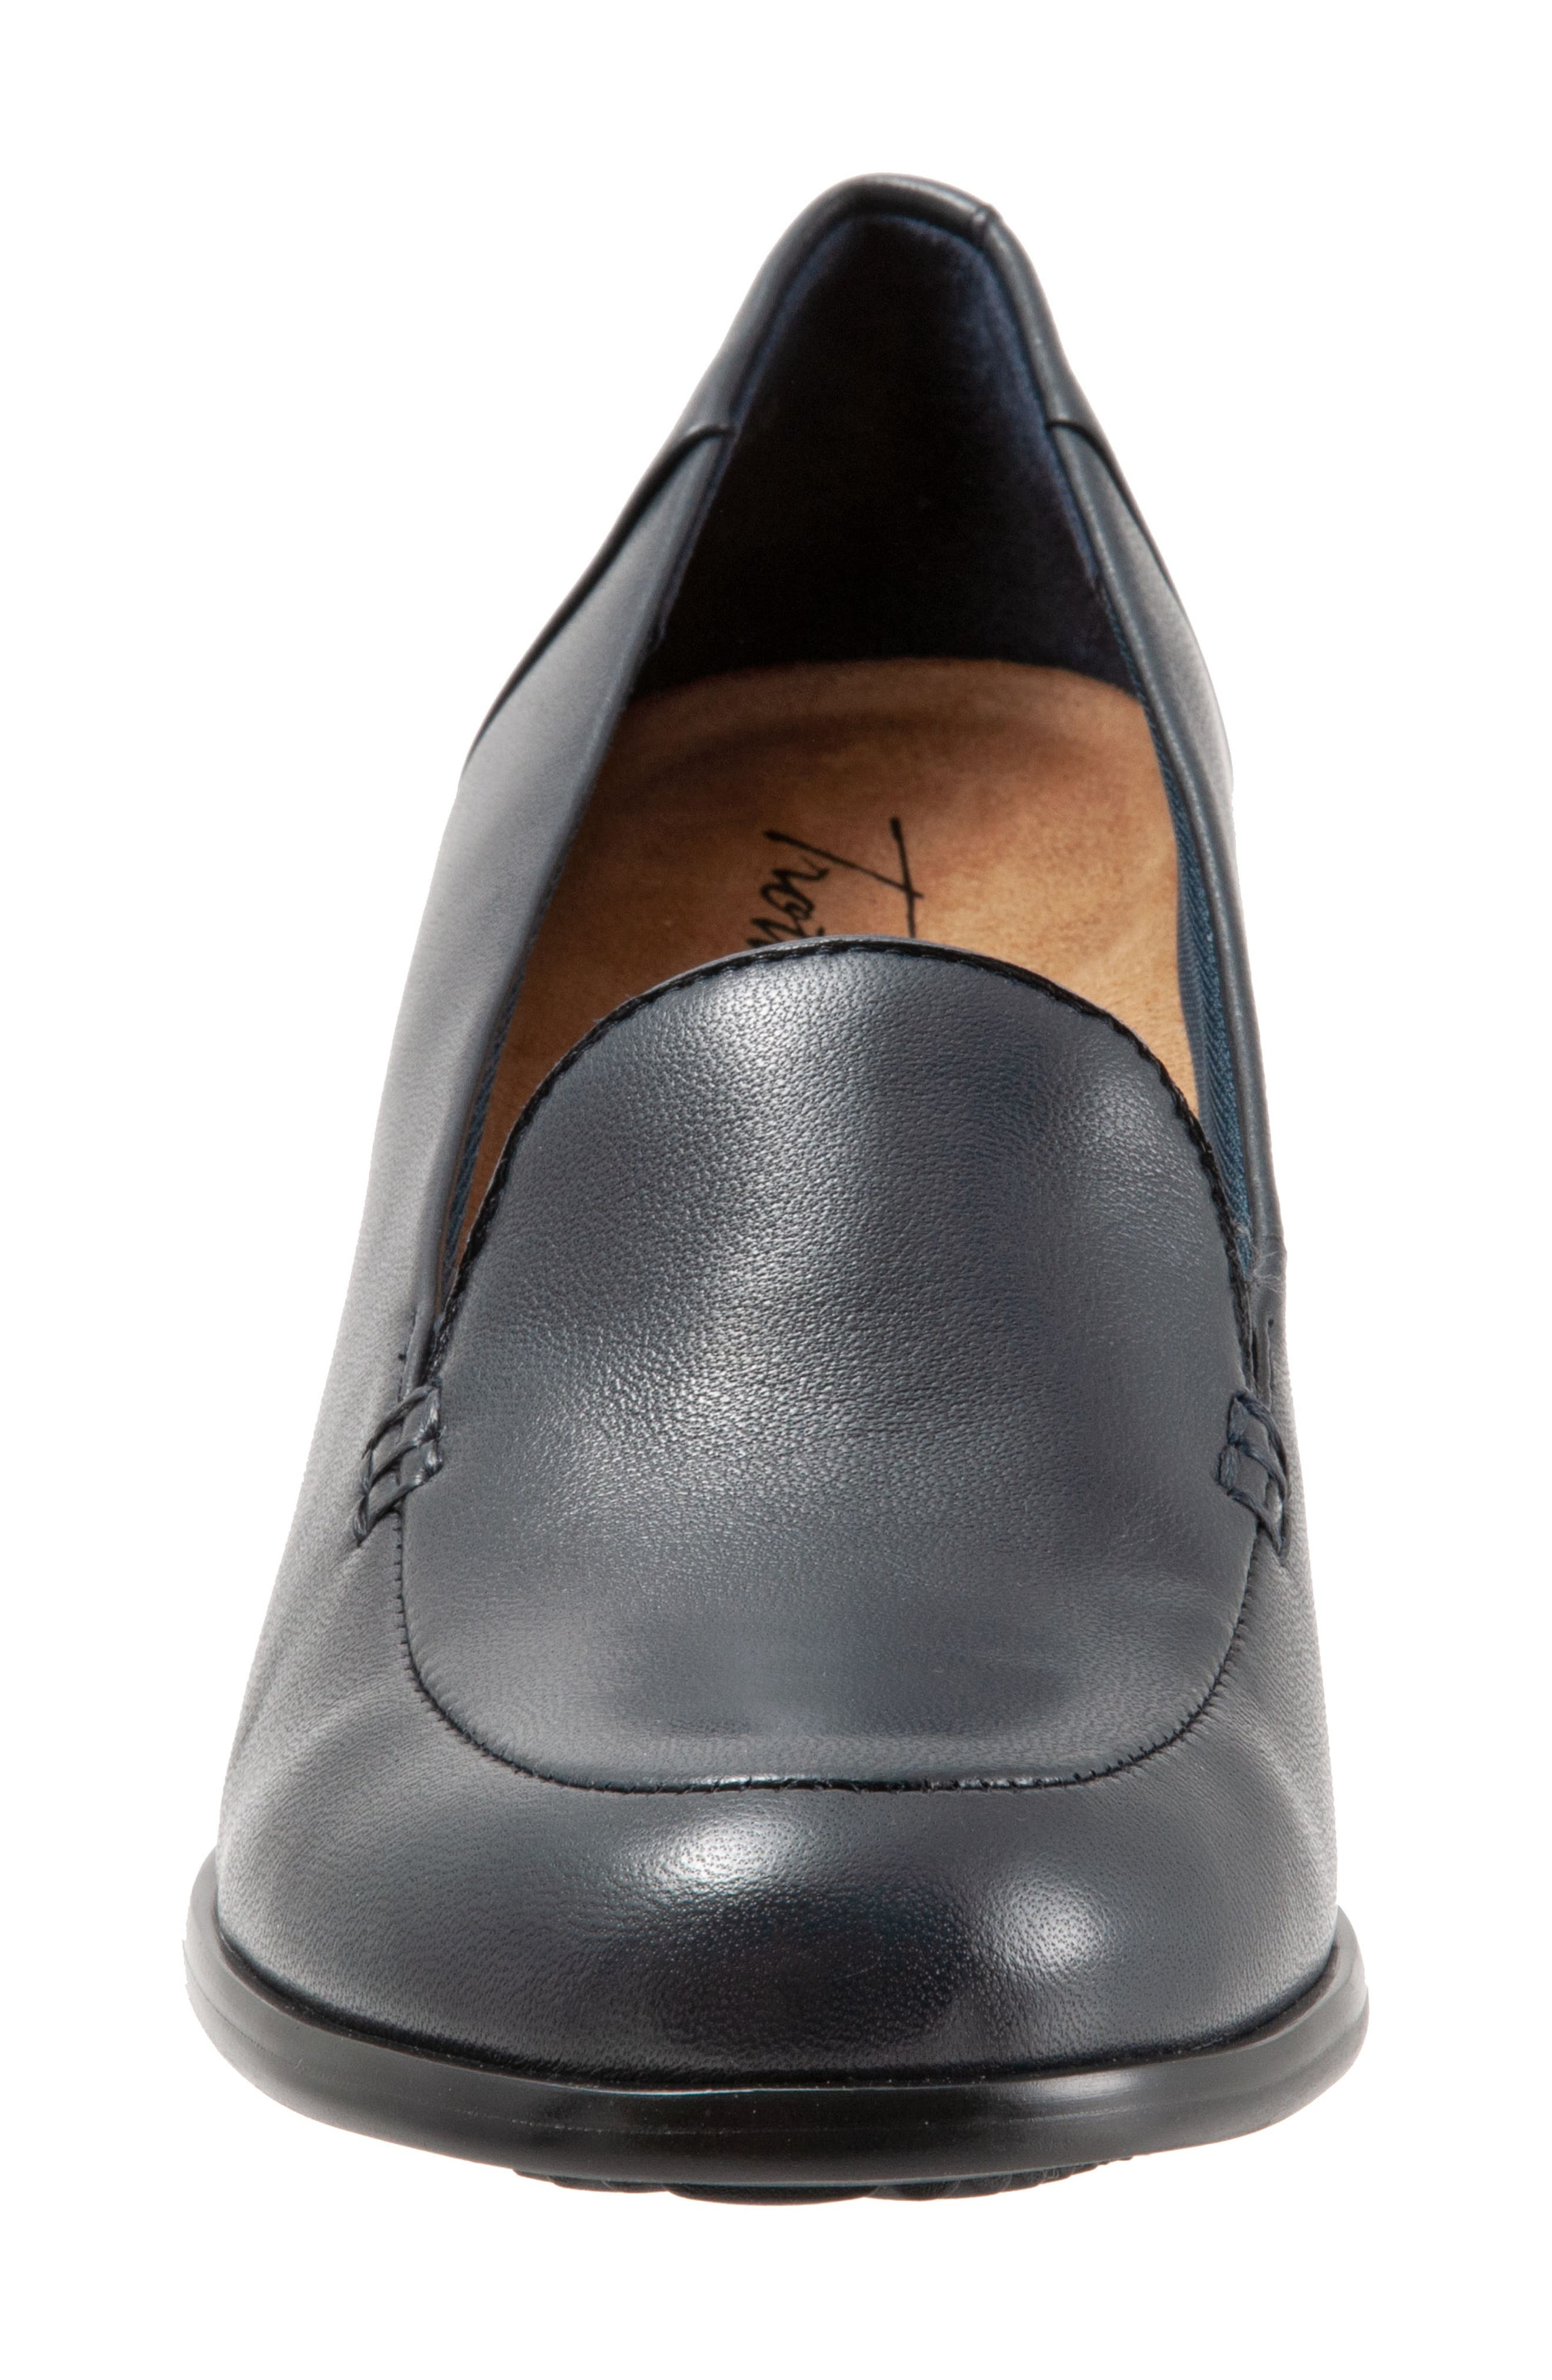 TROTTERS,                             Quincy Loafer Pump,                             Alternate thumbnail 4, color,                             NAVY LEATHER